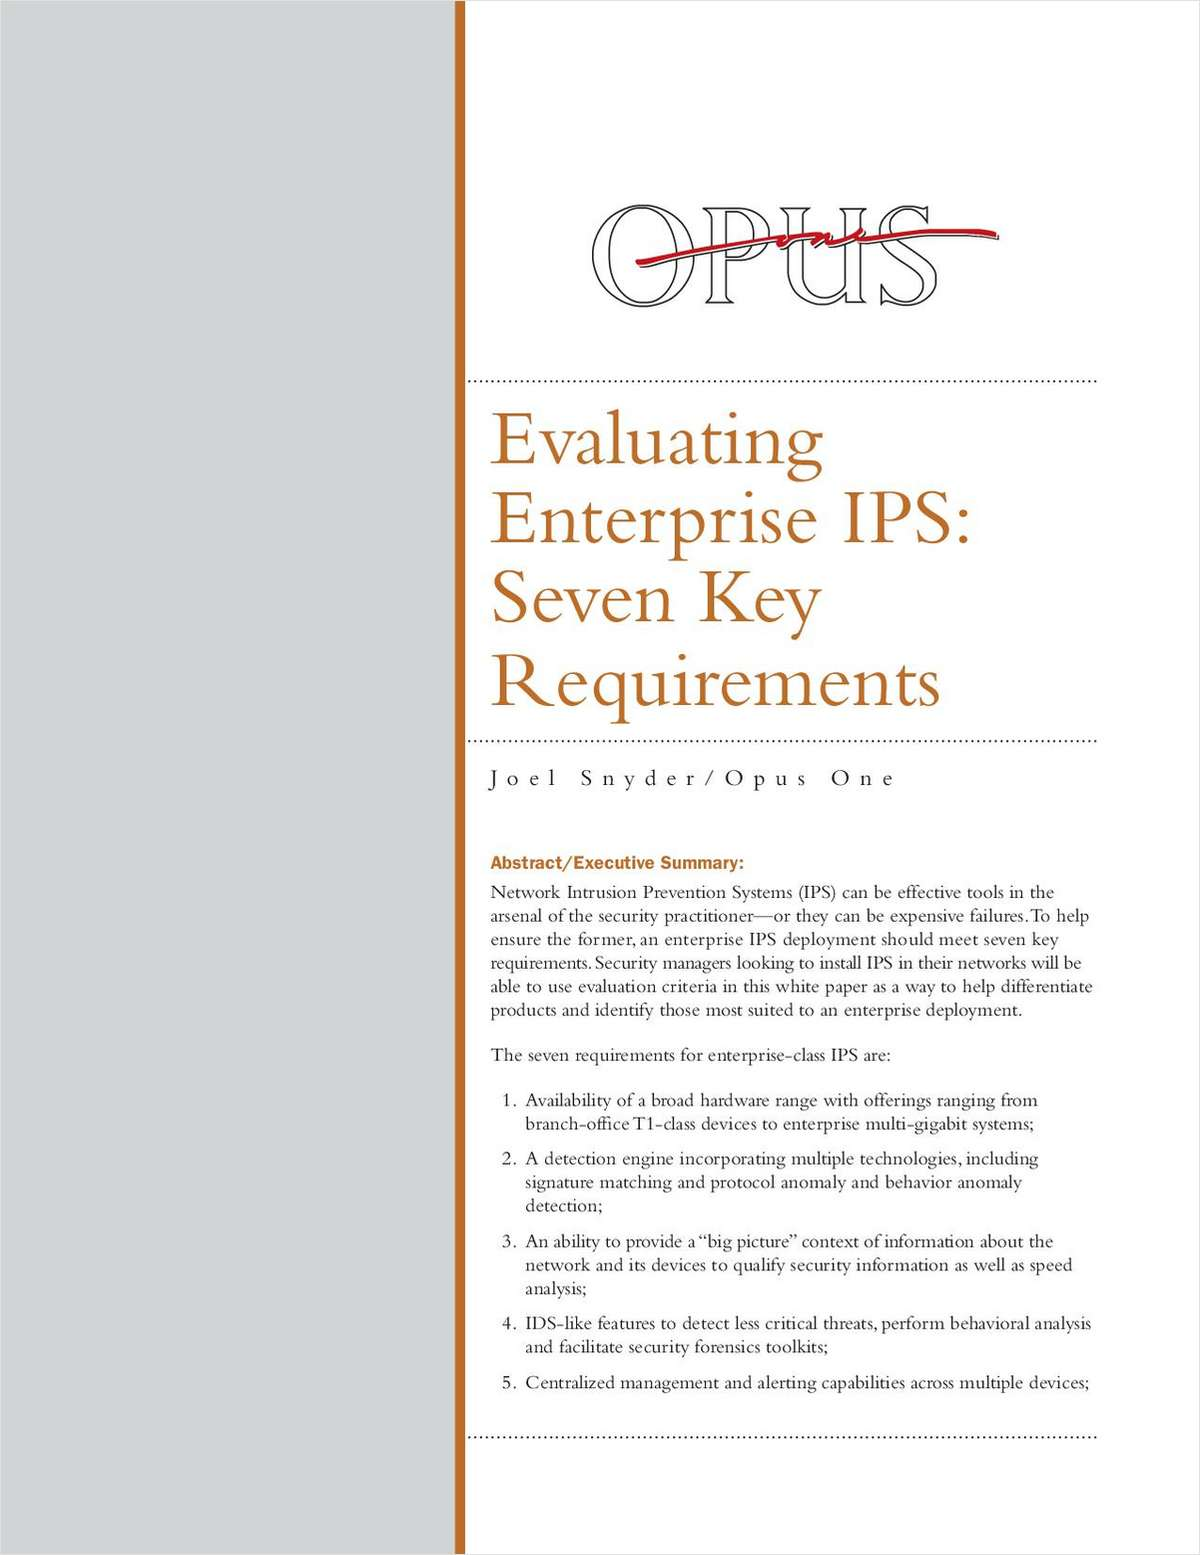 Evaluating Enterprise IPS: Seven Key Requirements